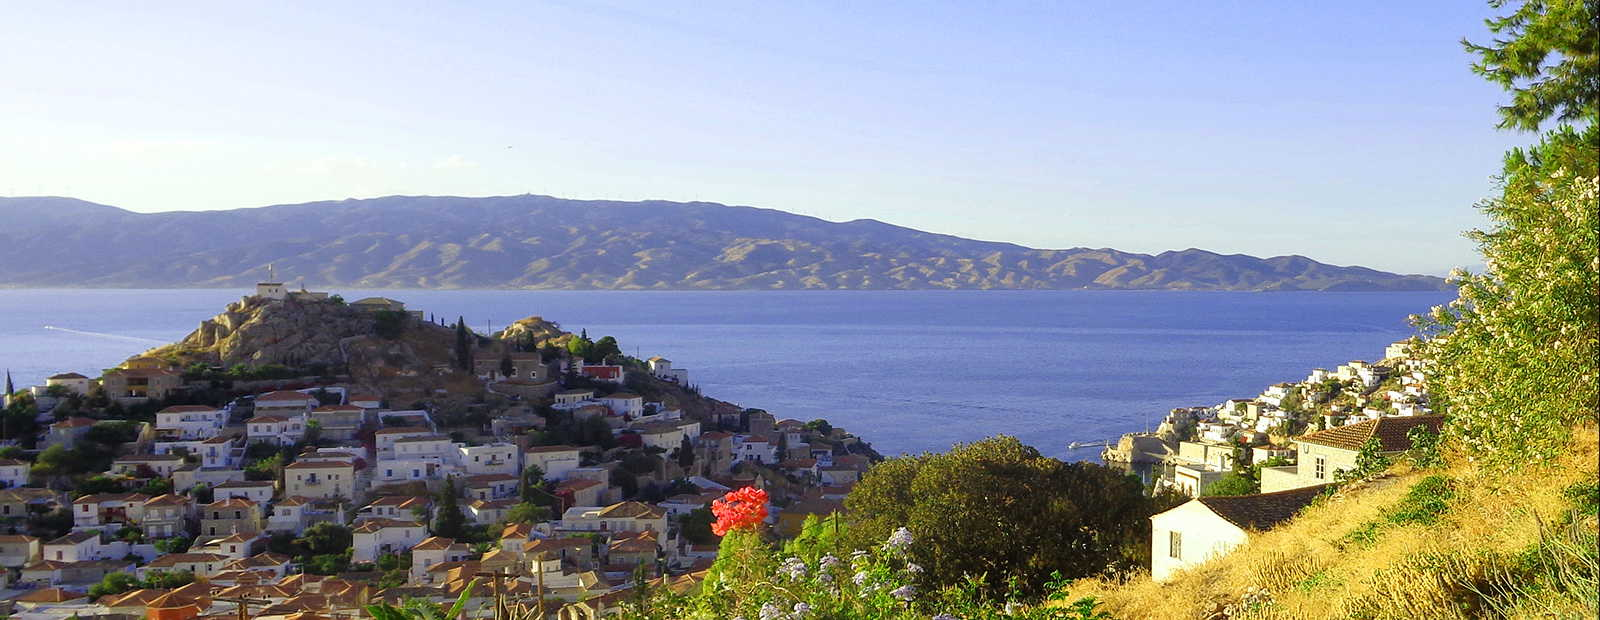 Luxurious holiday homes in Hydra